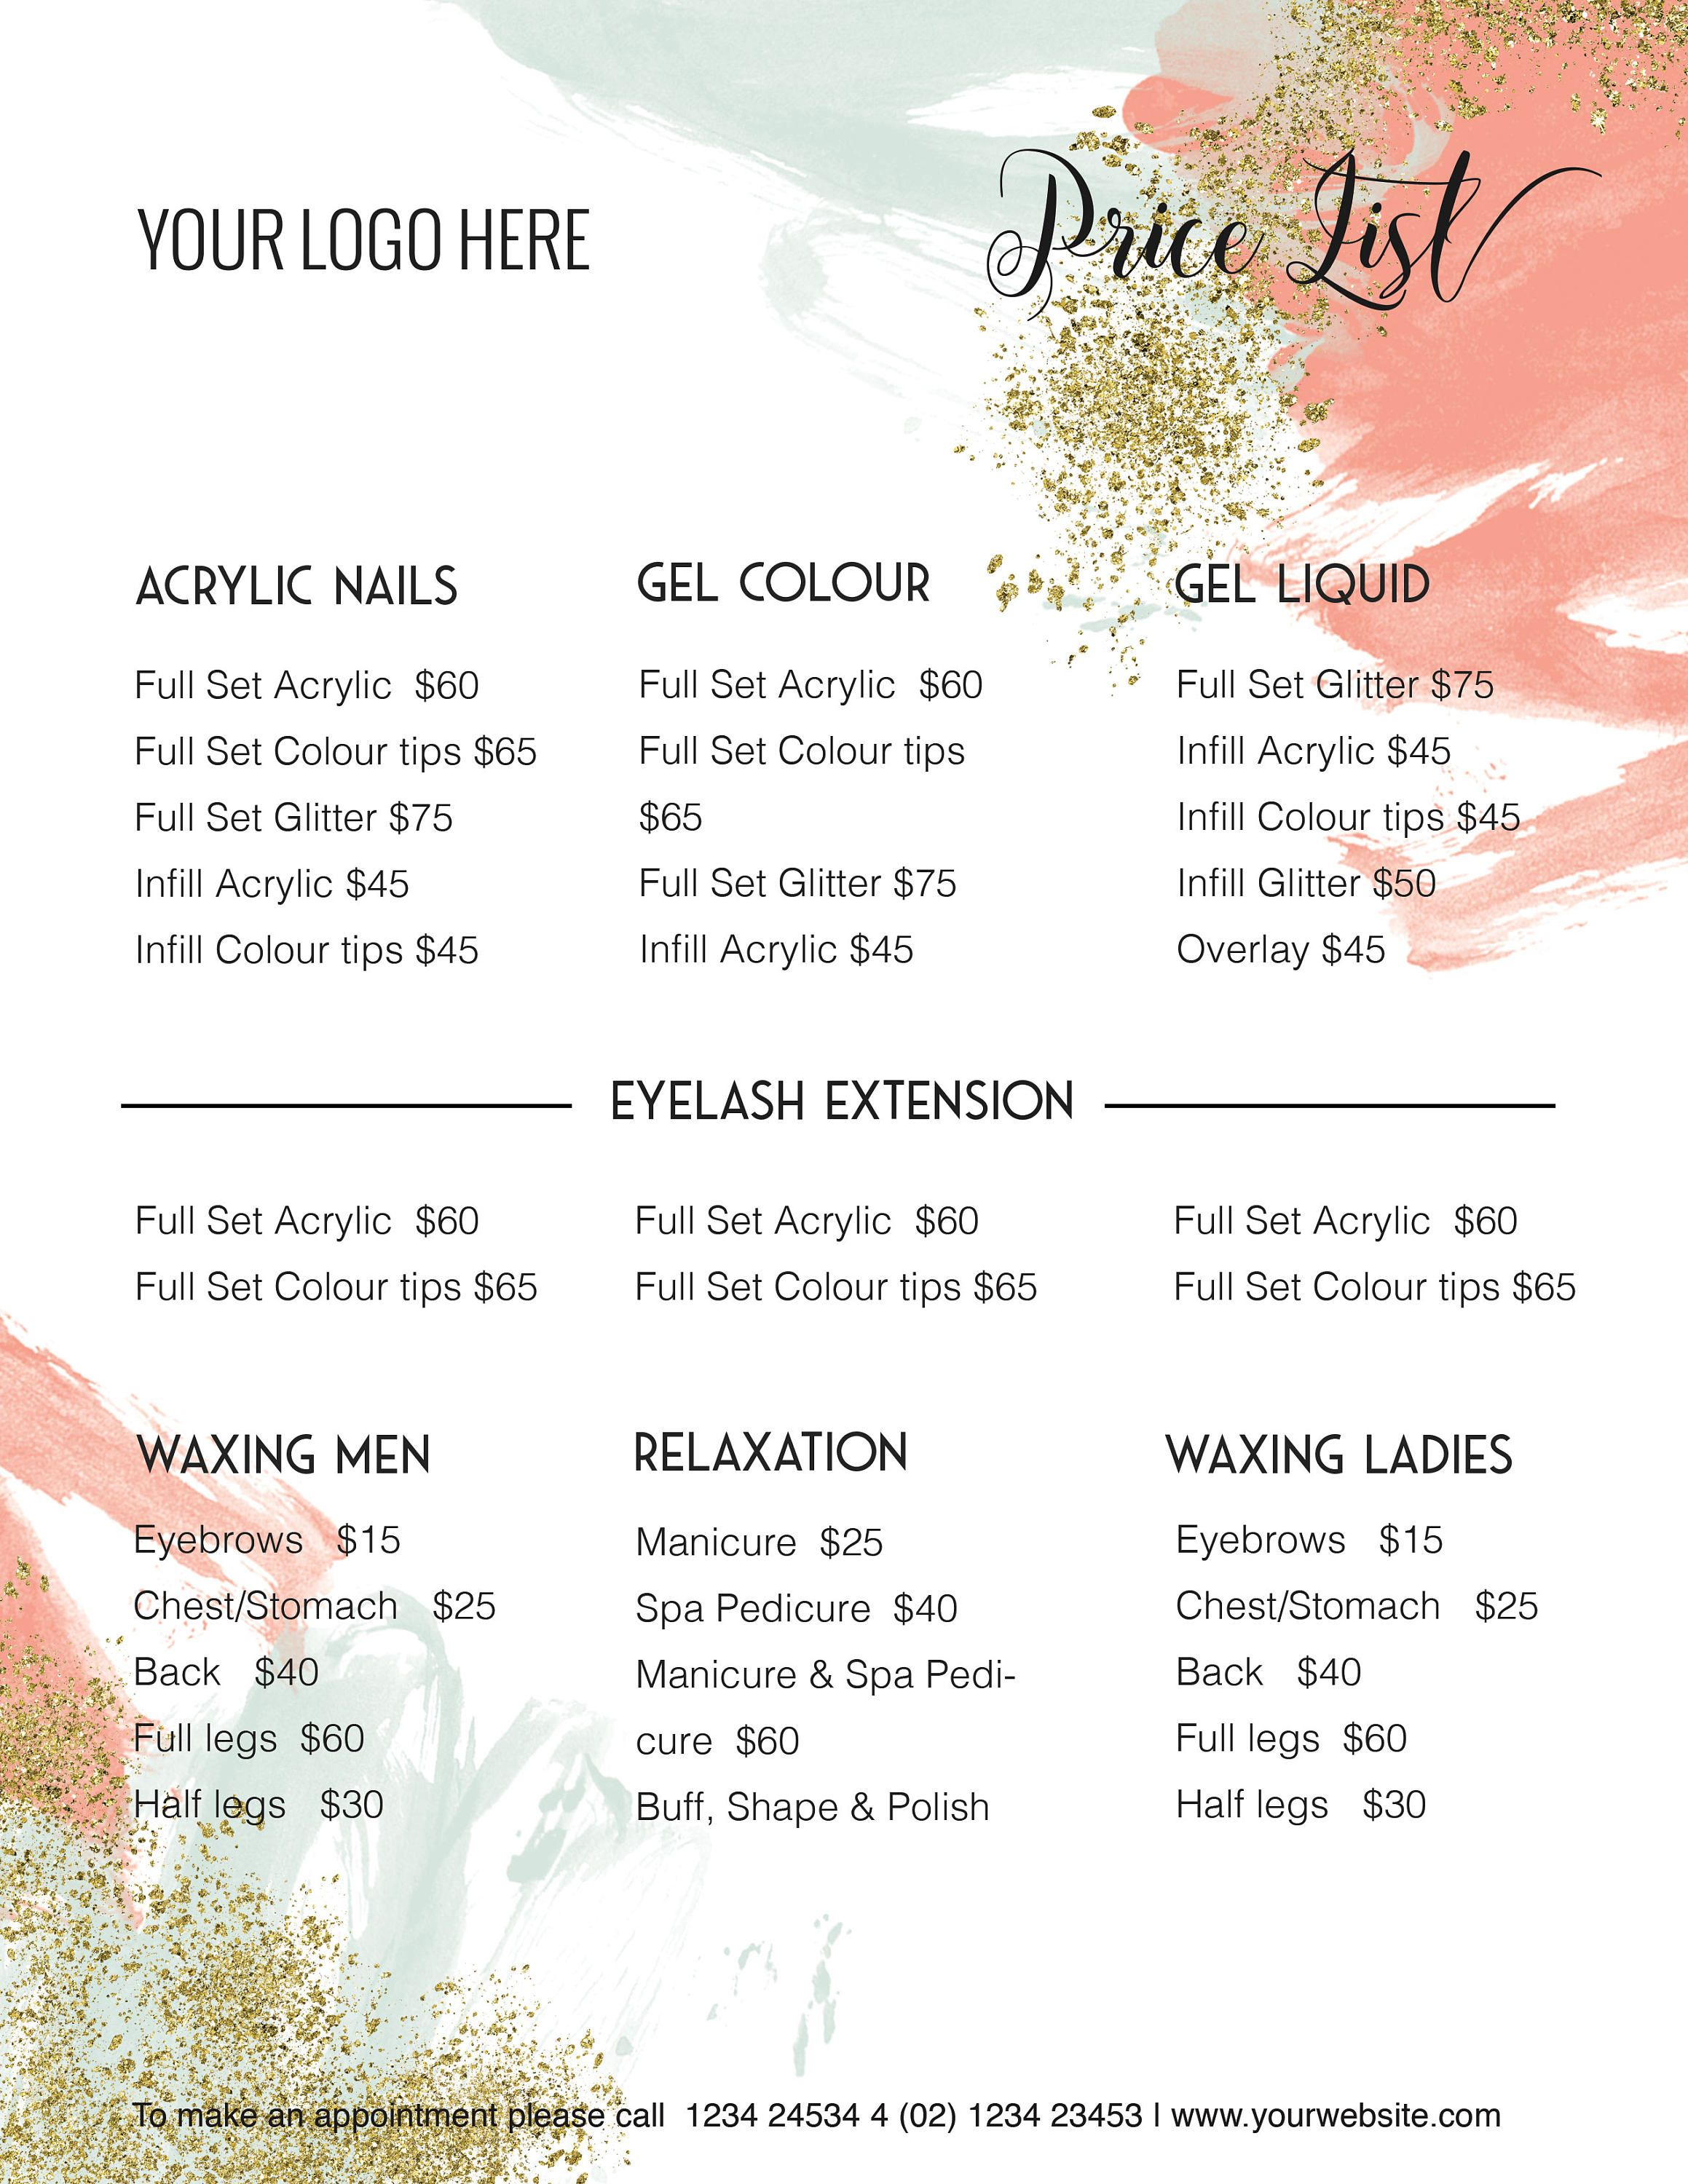 Nail Salon Price List Template : salon, price, template, Price, Guide, Pricing, Template, Specials, Acrylic, Nails, Price,, Salon, List,, Photography